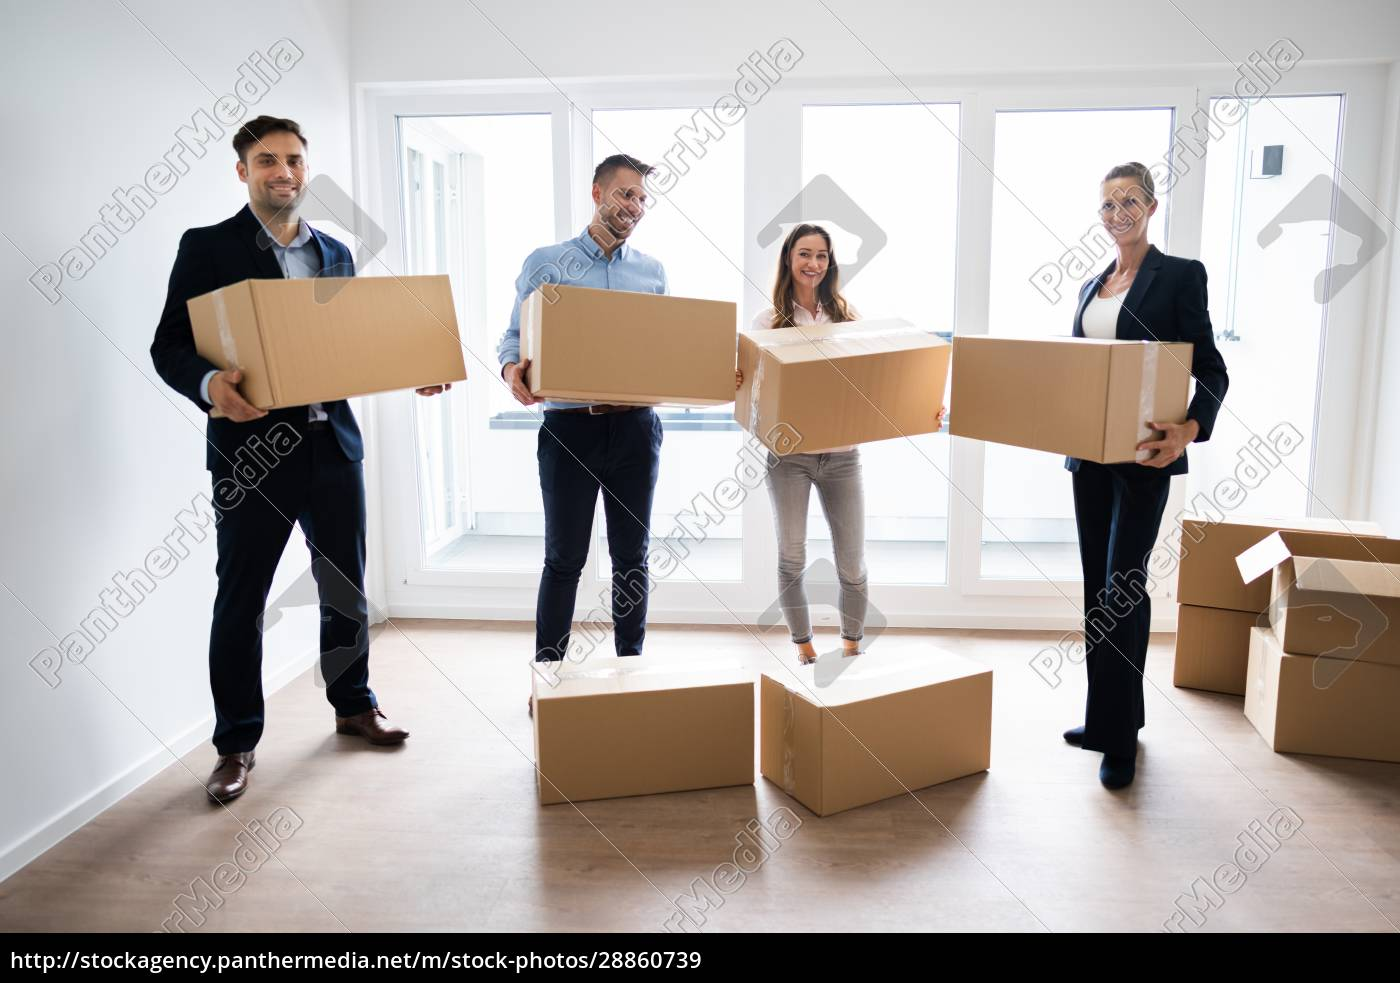 office, relocation., executives, moving, cardboard, boxes - 28860739